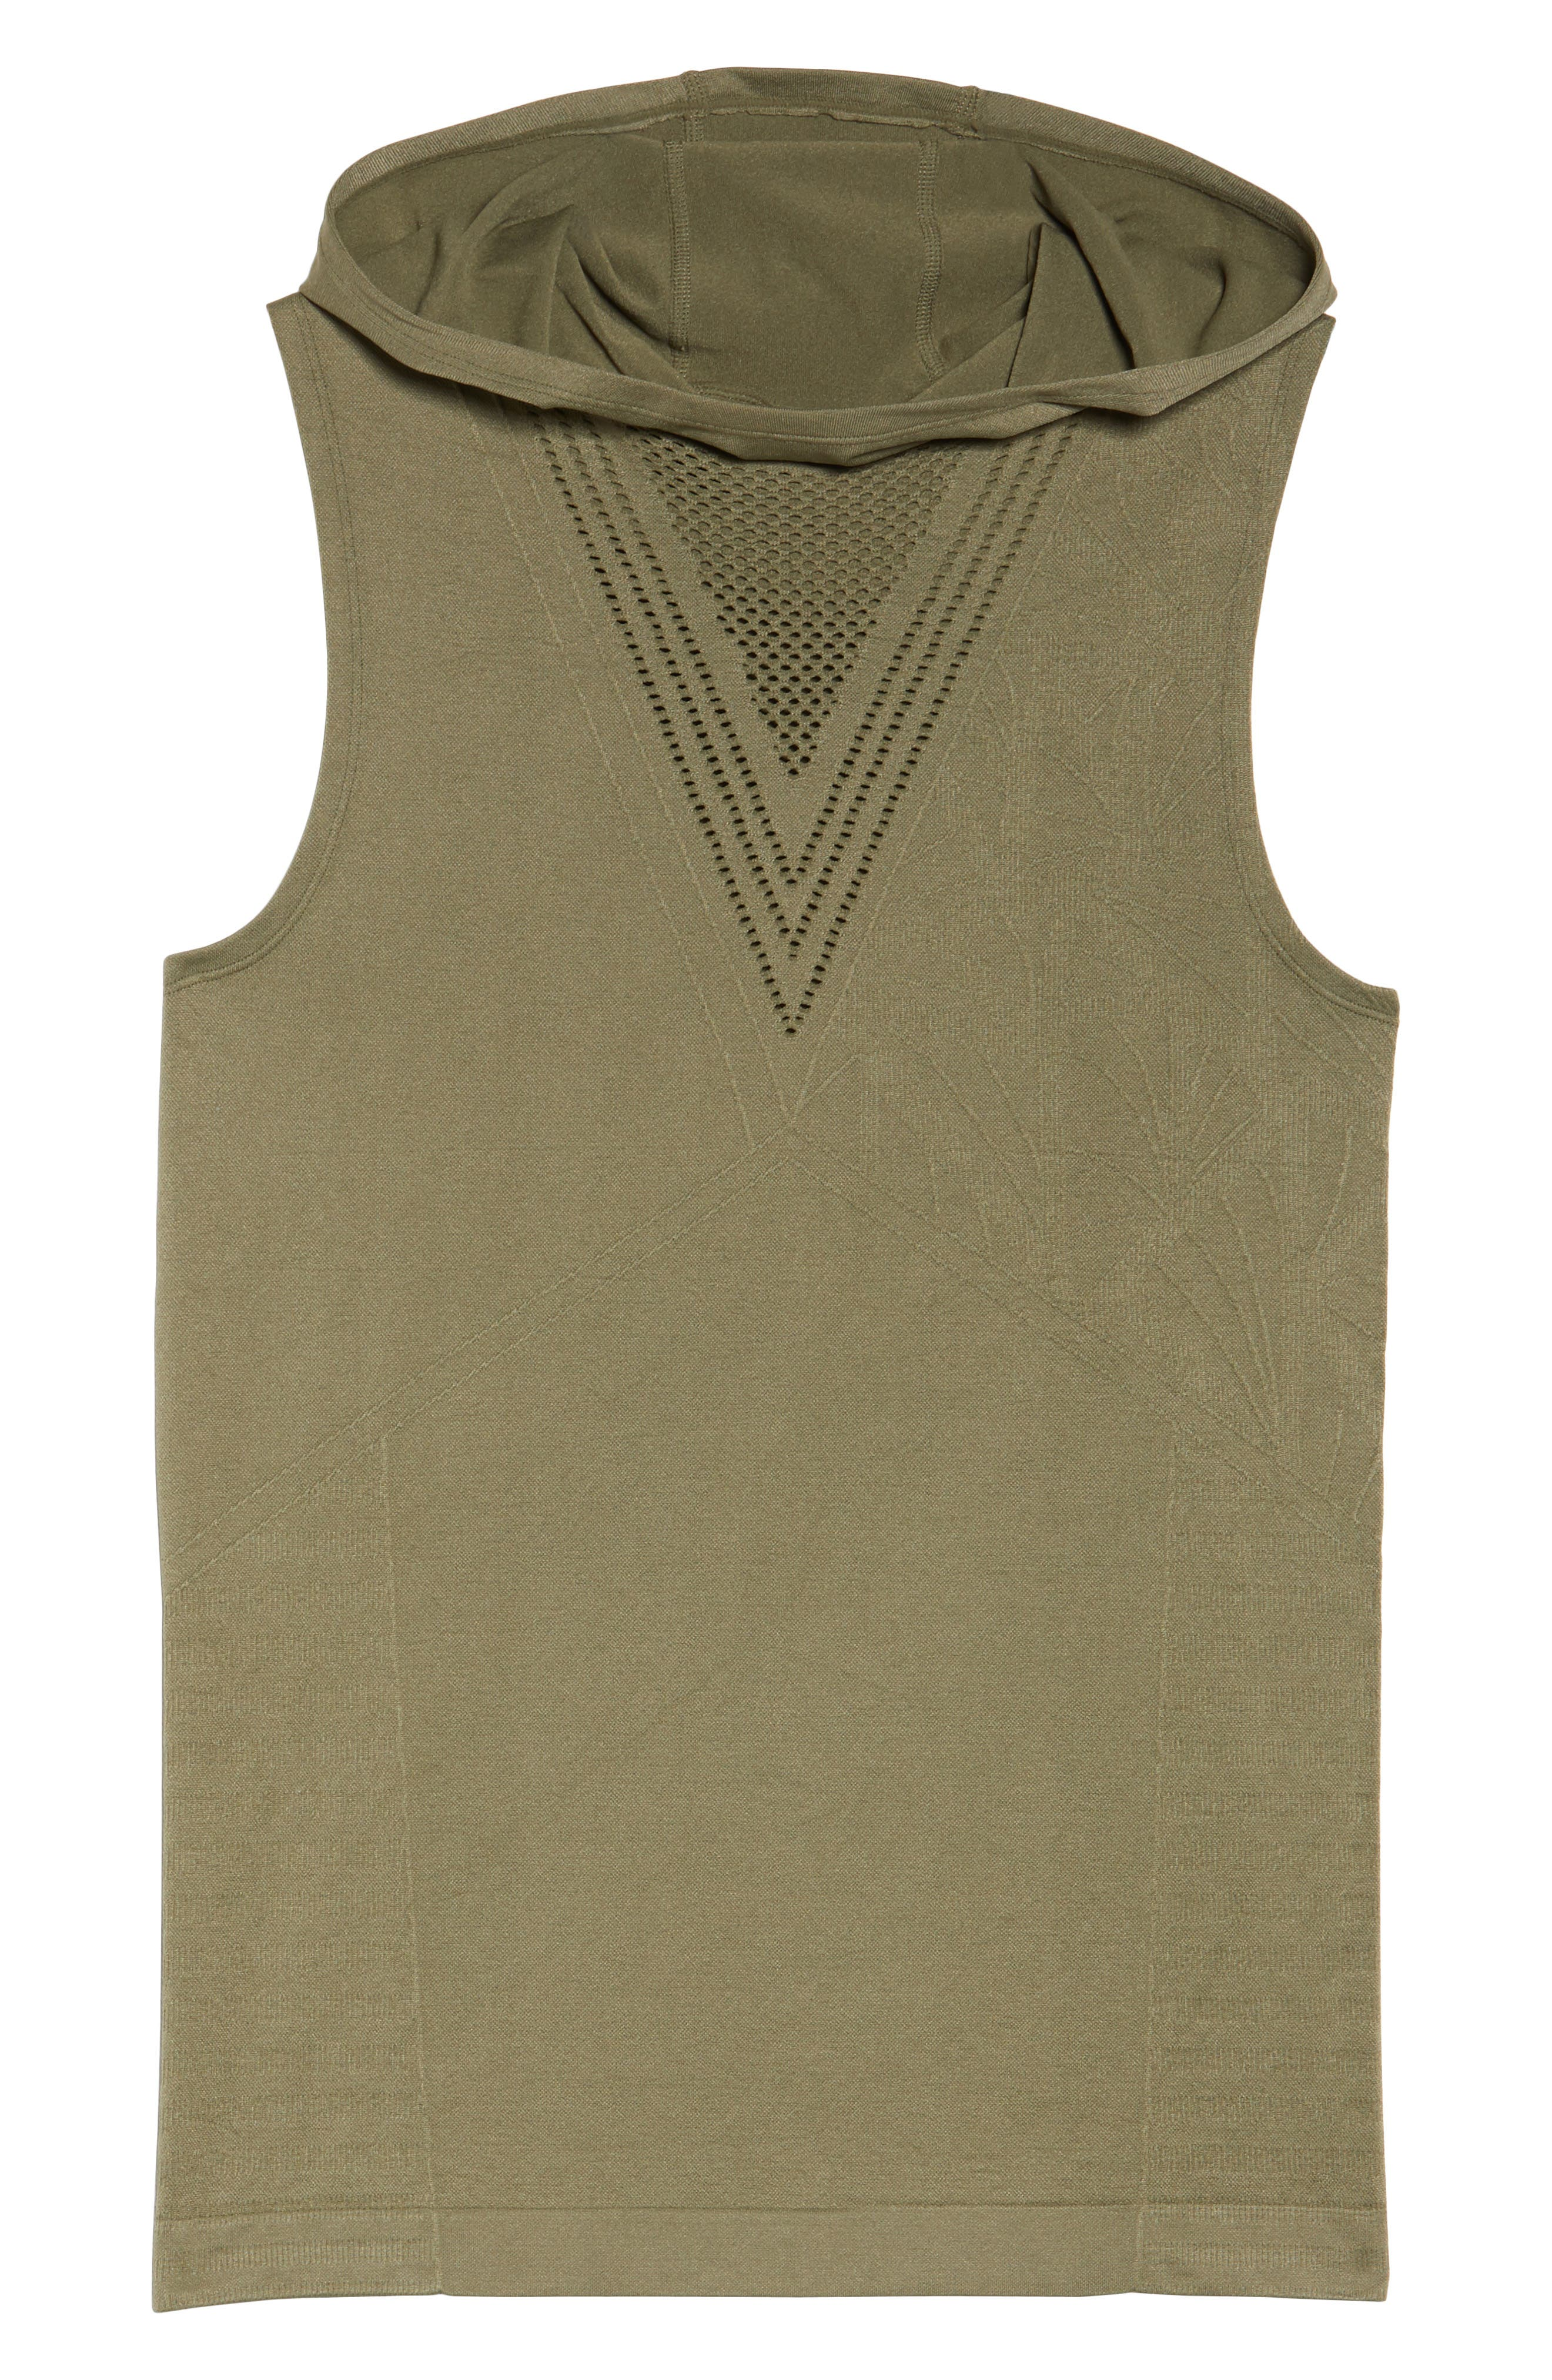 Velocity Sleeveless Hoodie,                             Alternate thumbnail 7, color,                             Deep Lichen Green